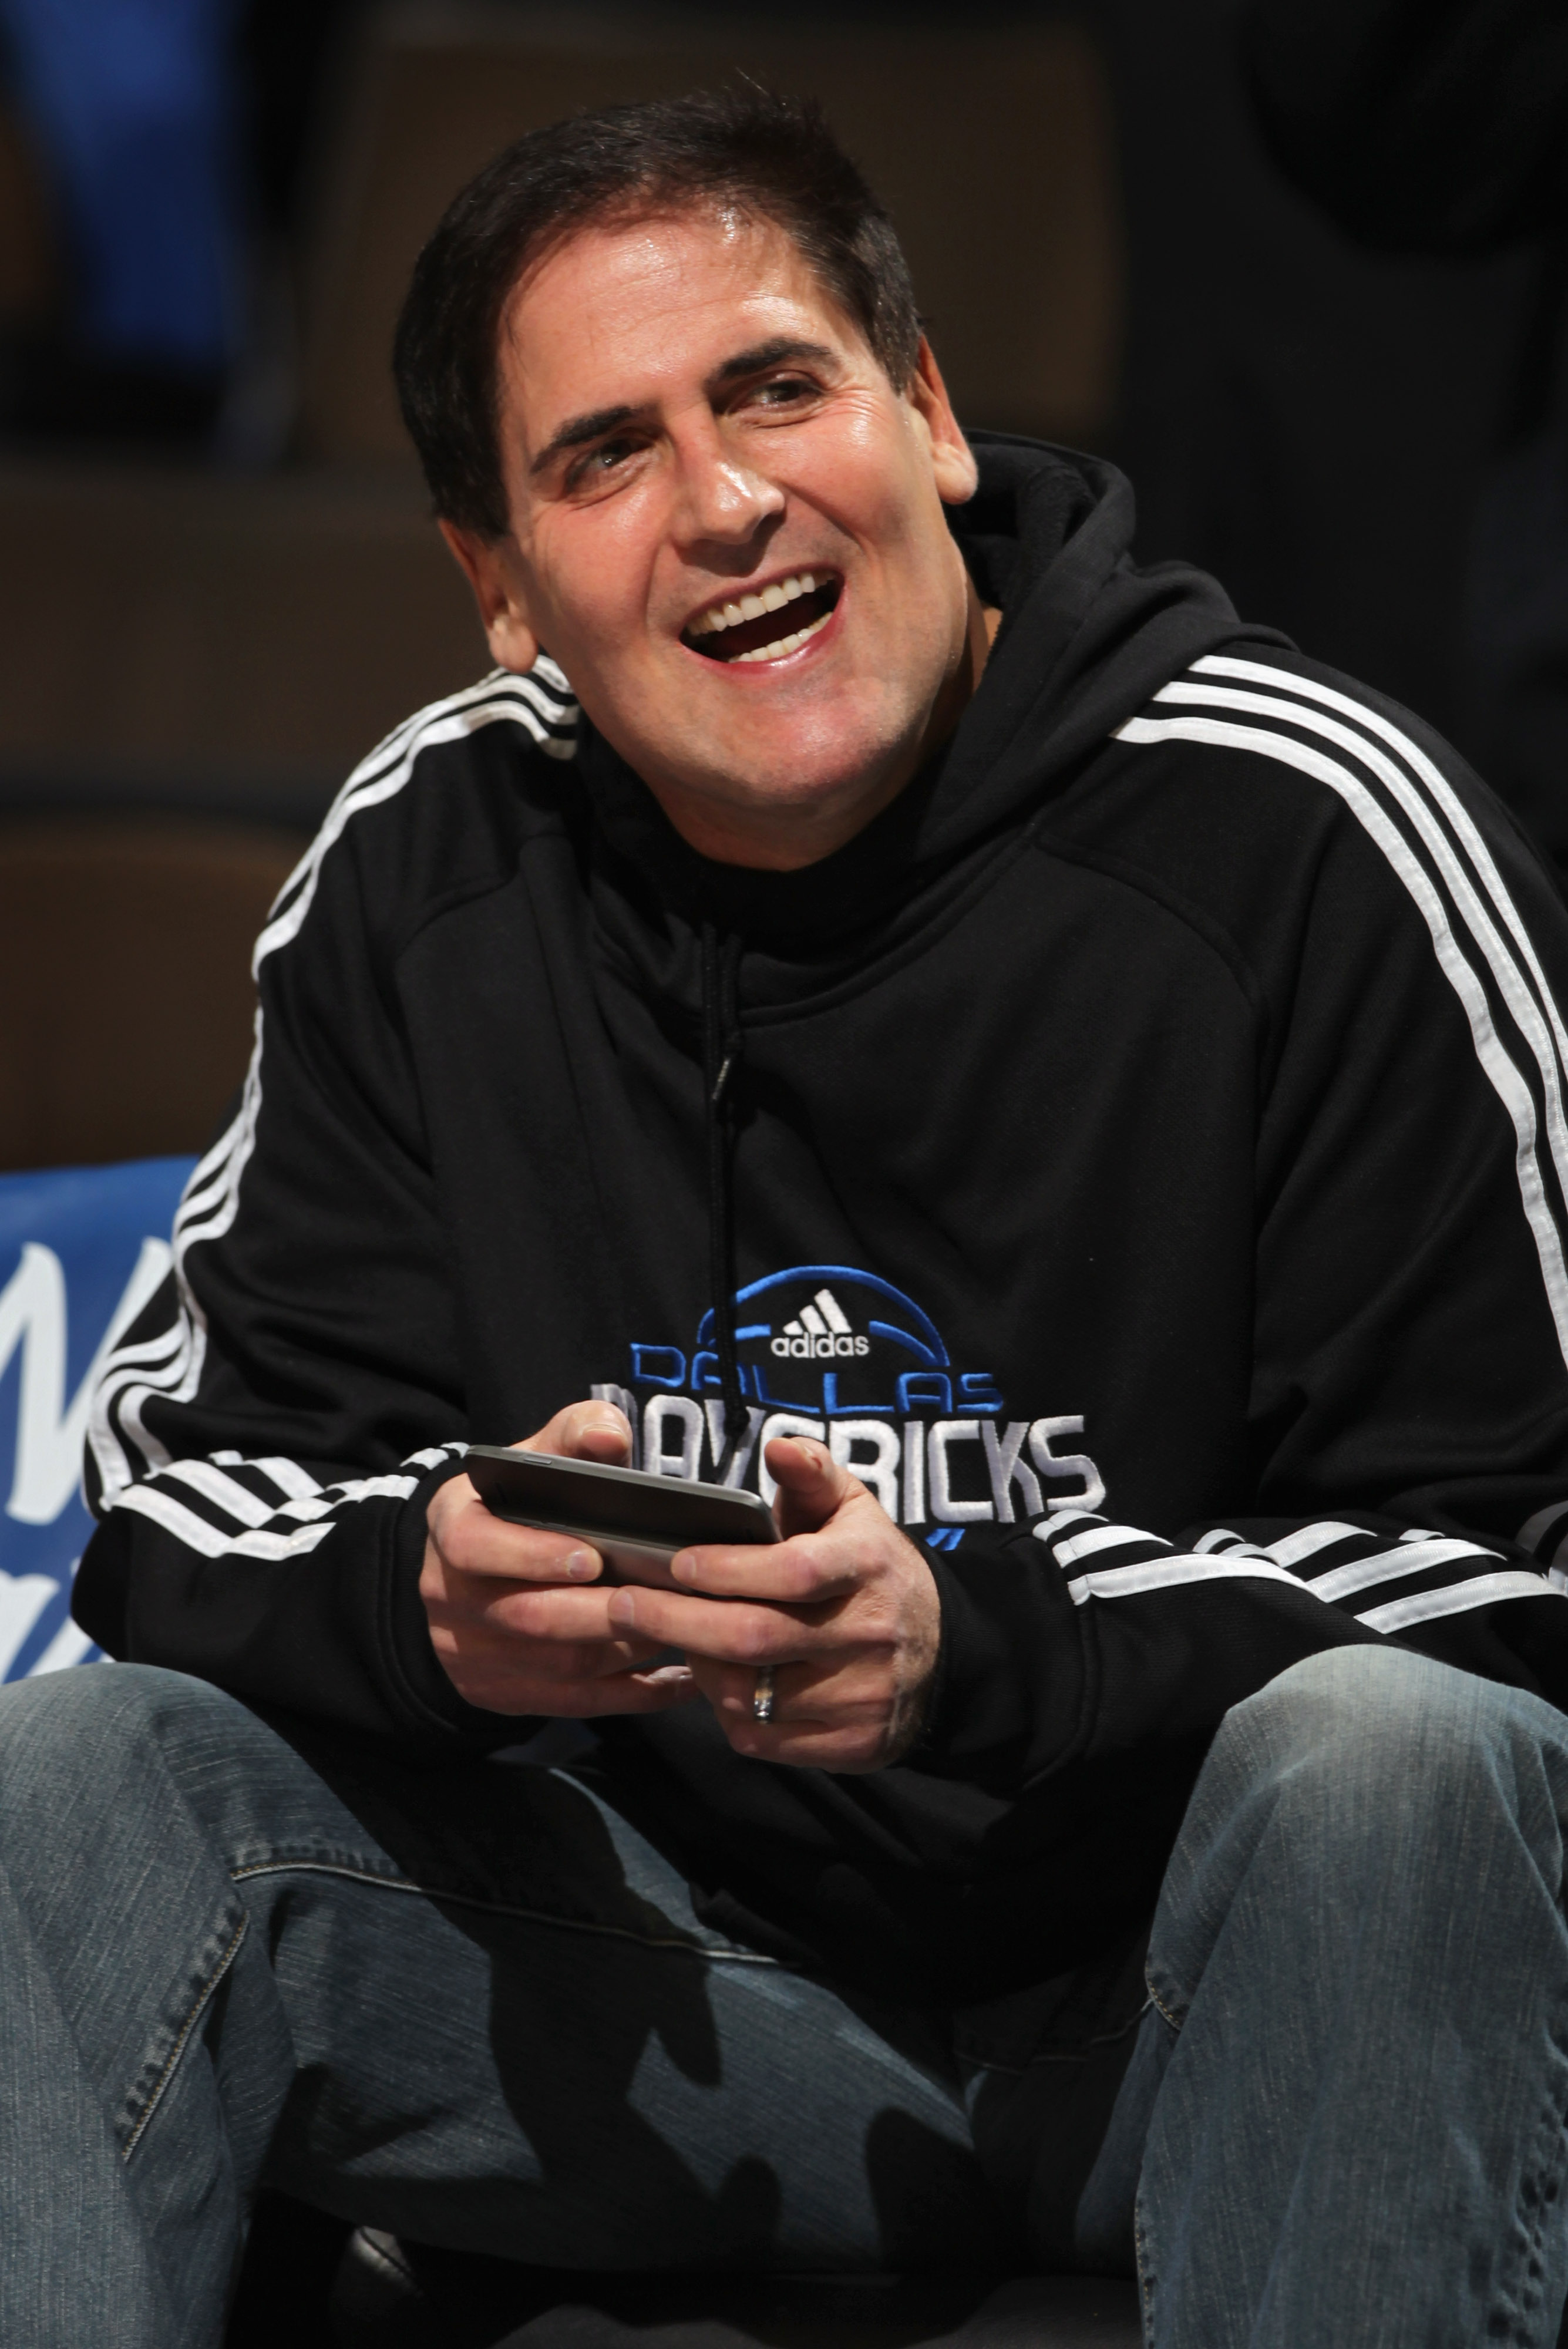 DENVER, CO - FEBRUARY 10:  Mark Cuban, owner of the Dallas Mavericks, uses a personal electonic device as he sits on the bench during warm ups against the Denver Nuggets during NBA action at the Pepsi Center on February 10, 2011 in Denver, Colorado. The N